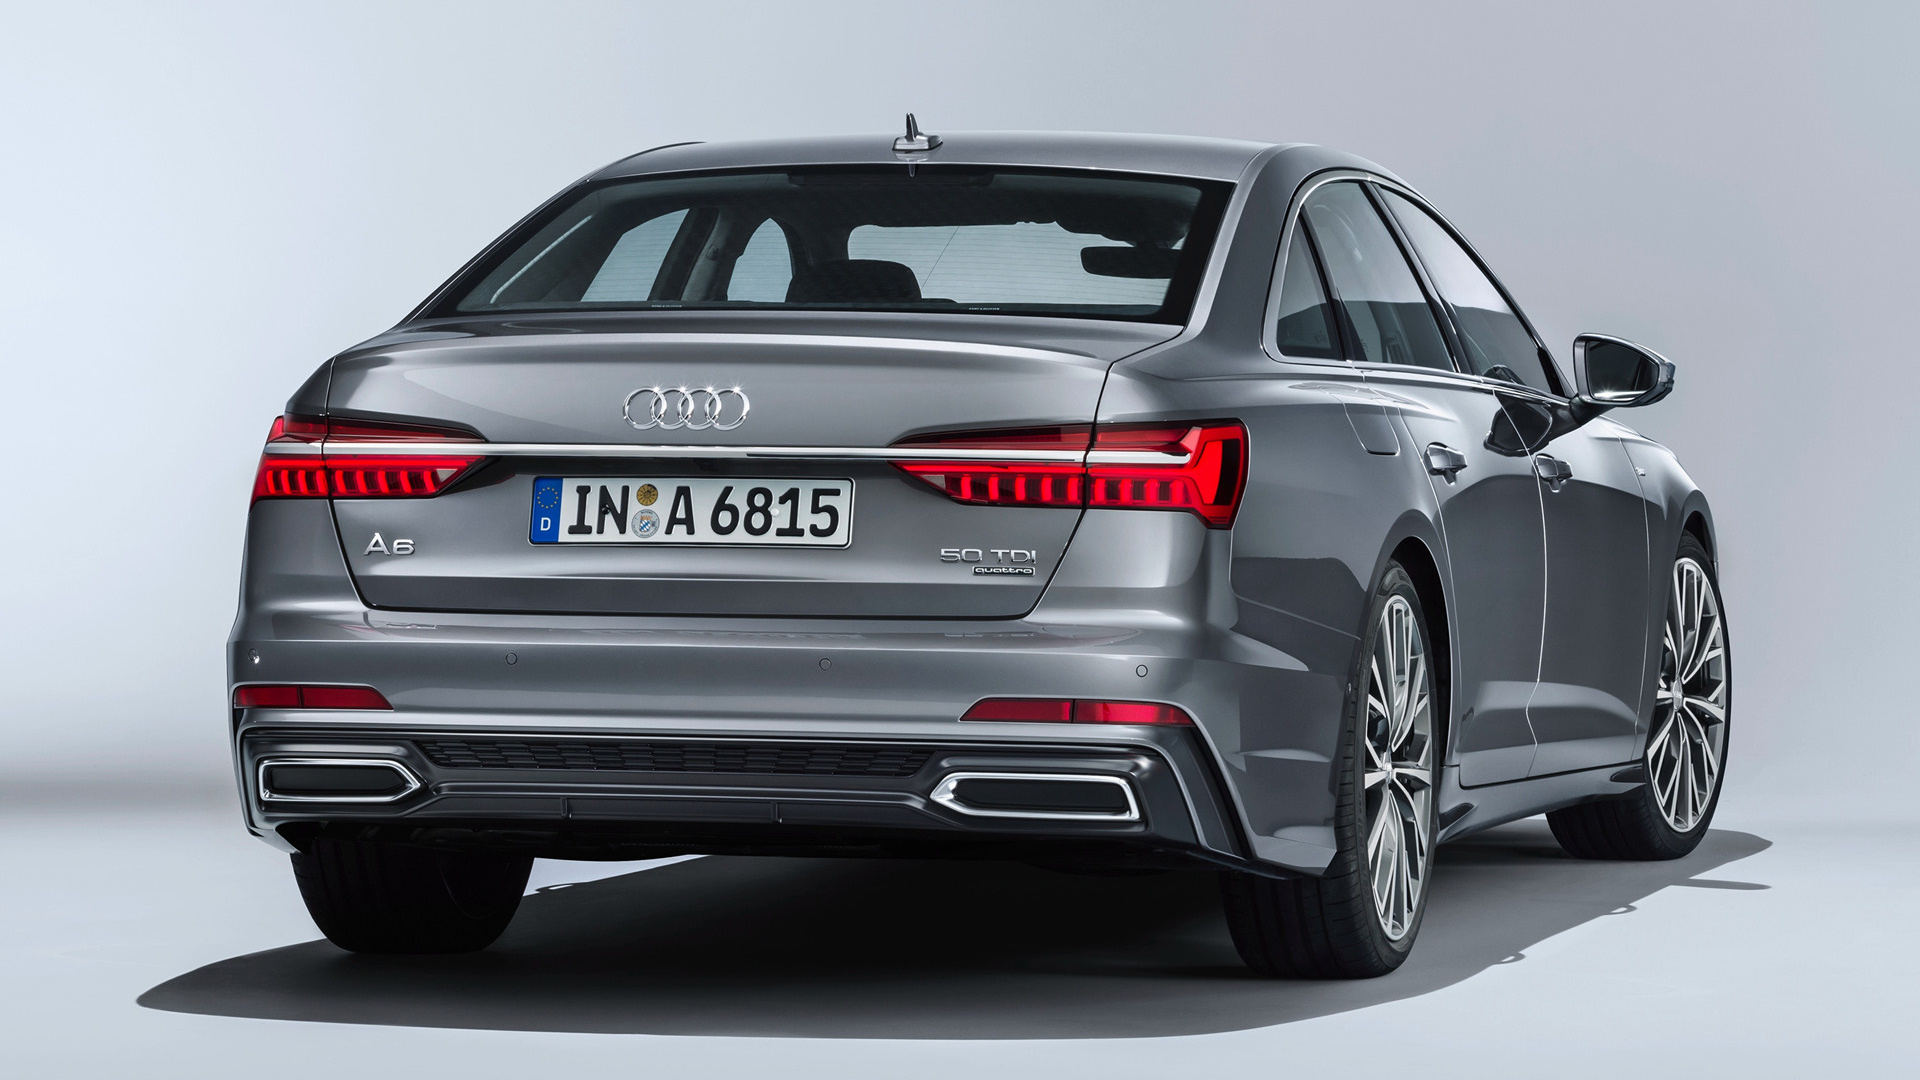 2018 Audi A6 Sedan S line - Wallpapers and HD Images   Car ...